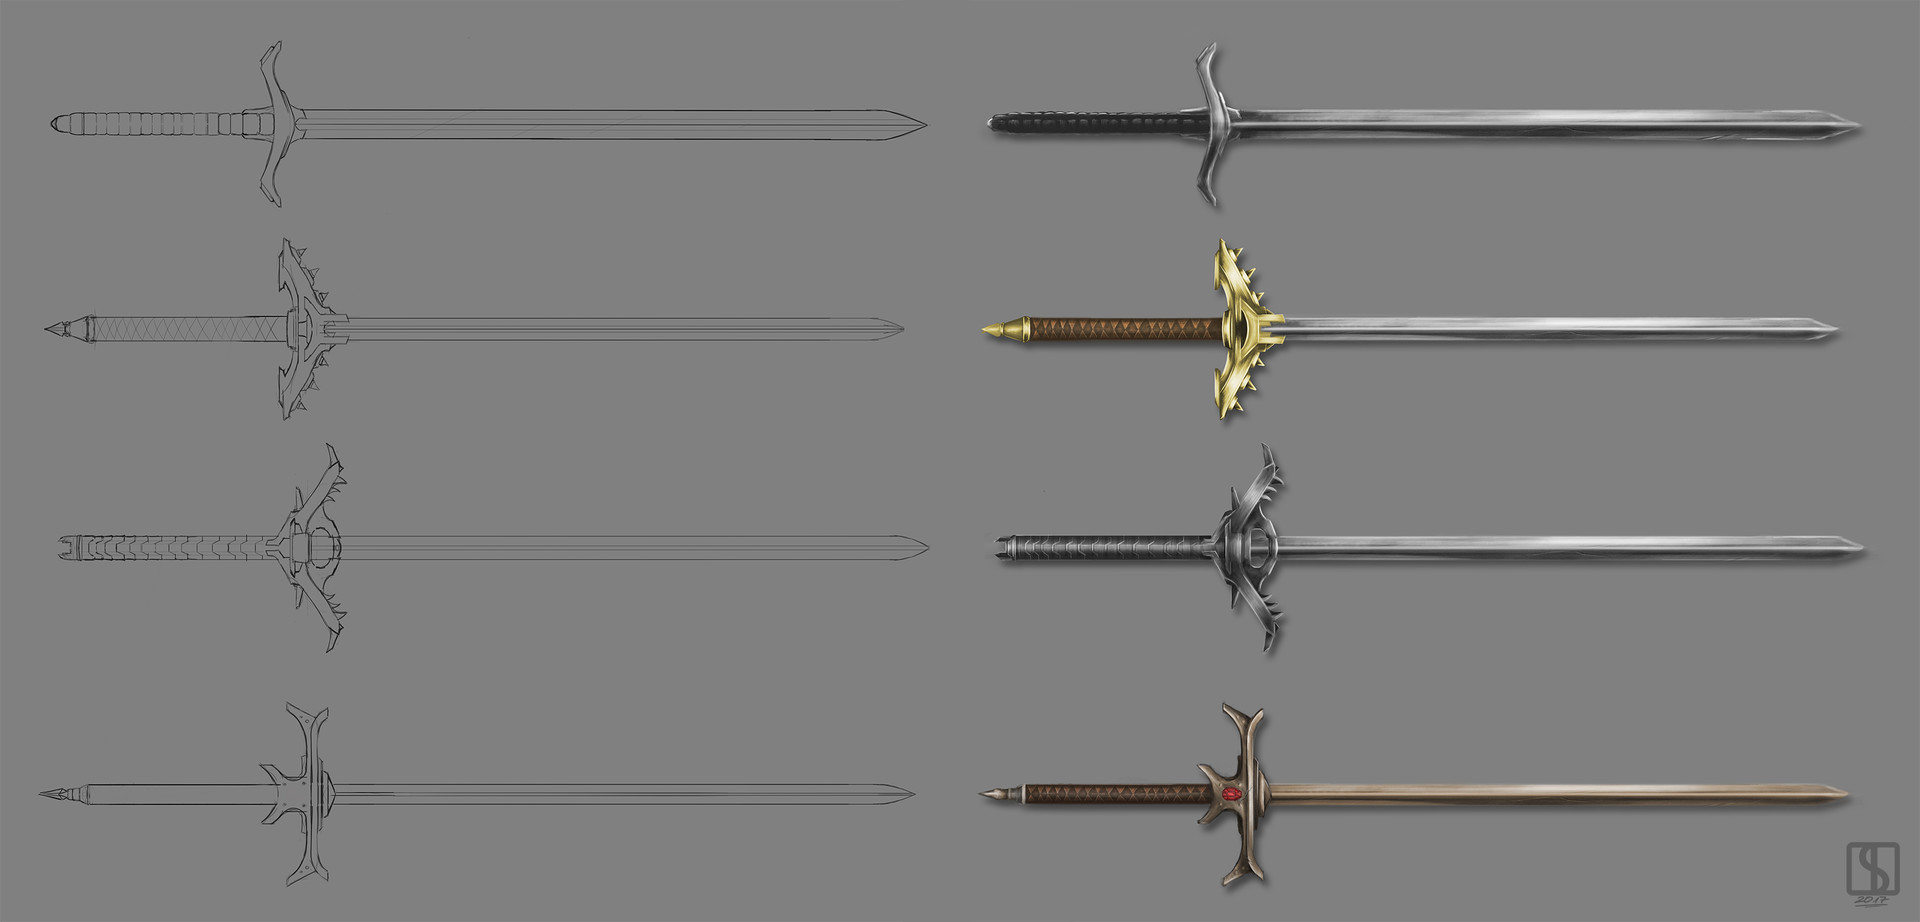 Sebastian luedke swordconcepts v001small